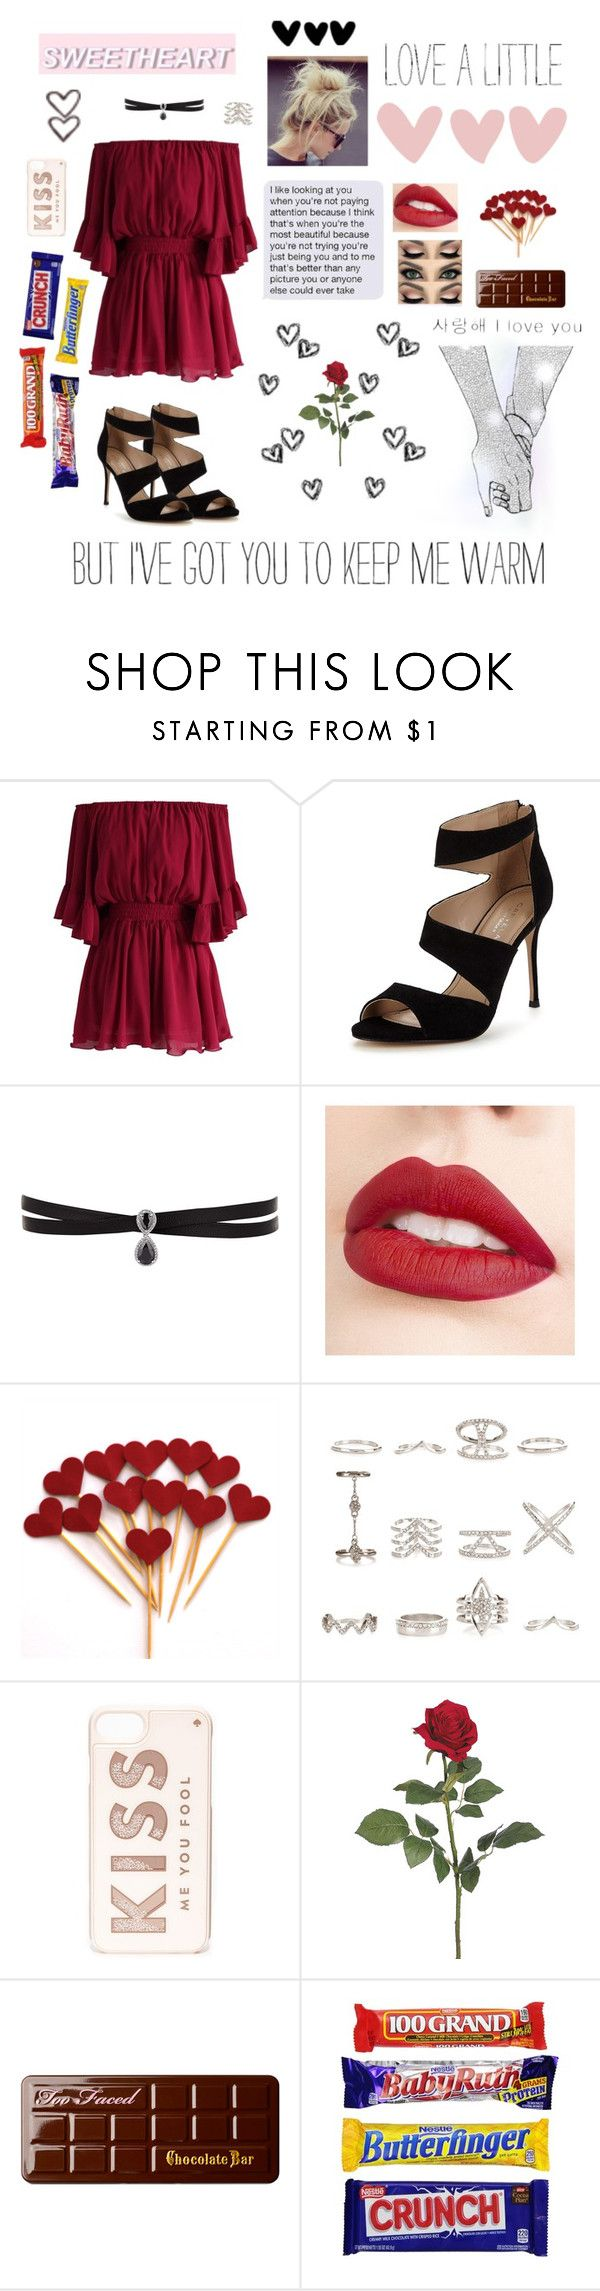 """But I've Got You to Keep Me Warm..."" by emjaymusic ❤ liked on Polyvore featuring Chicwish, Carvela, Fallon, Allura, Jouer, New Look, Kate Spade and Too Faced Cosmetics"